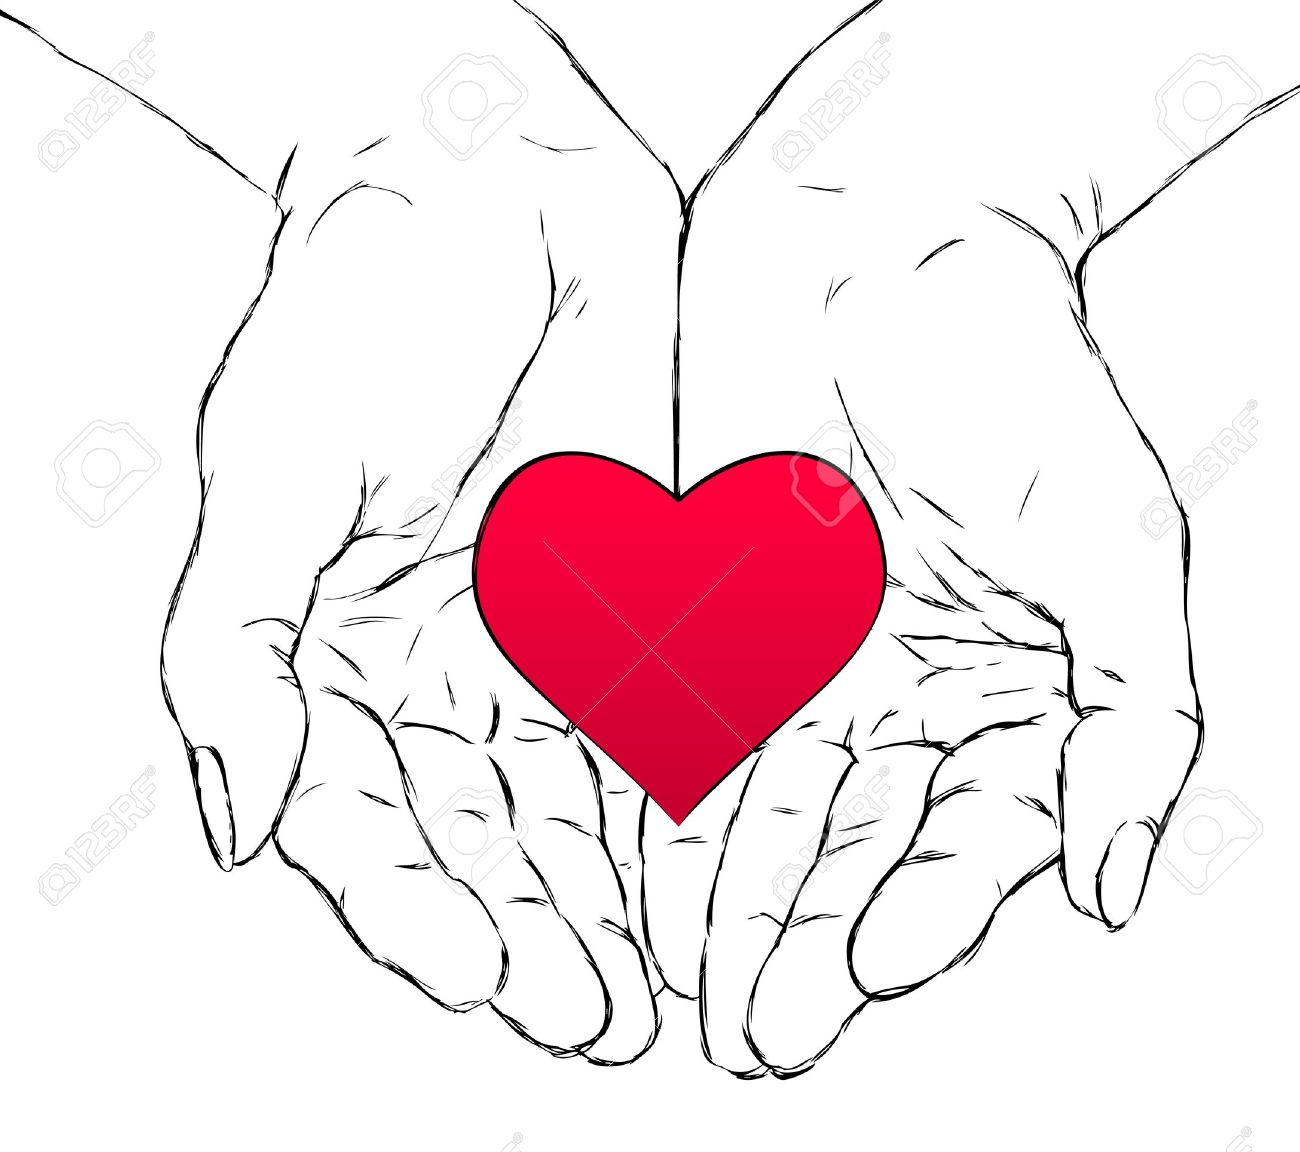 Hand Holding A Heart Drawing at GetDrawings.com.